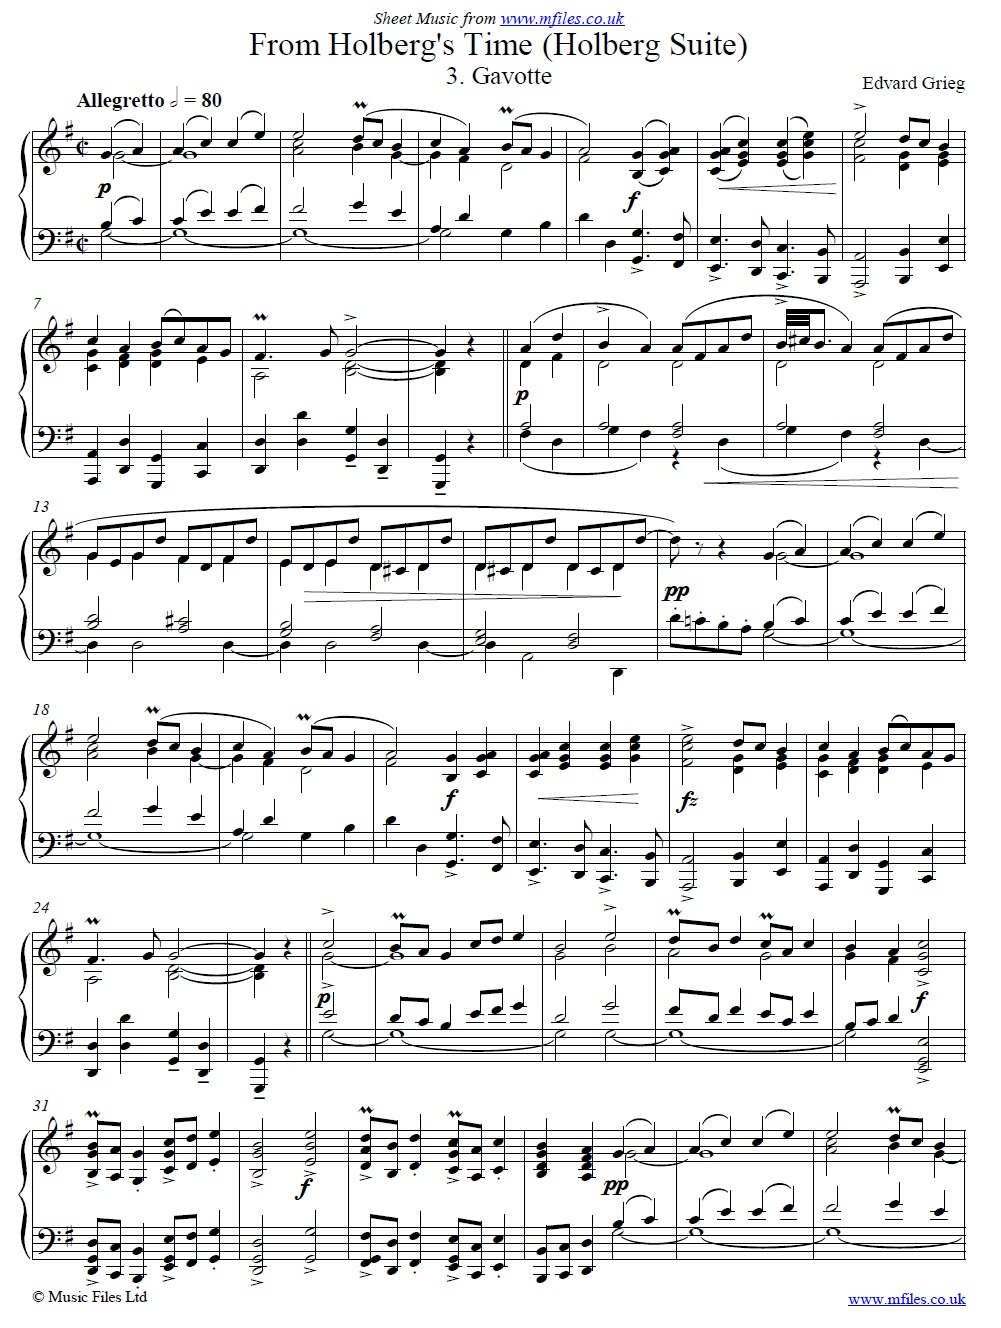 Grieg's Holberg Suite (3rd movement: Gavotte) for piano - sheet music 1st page